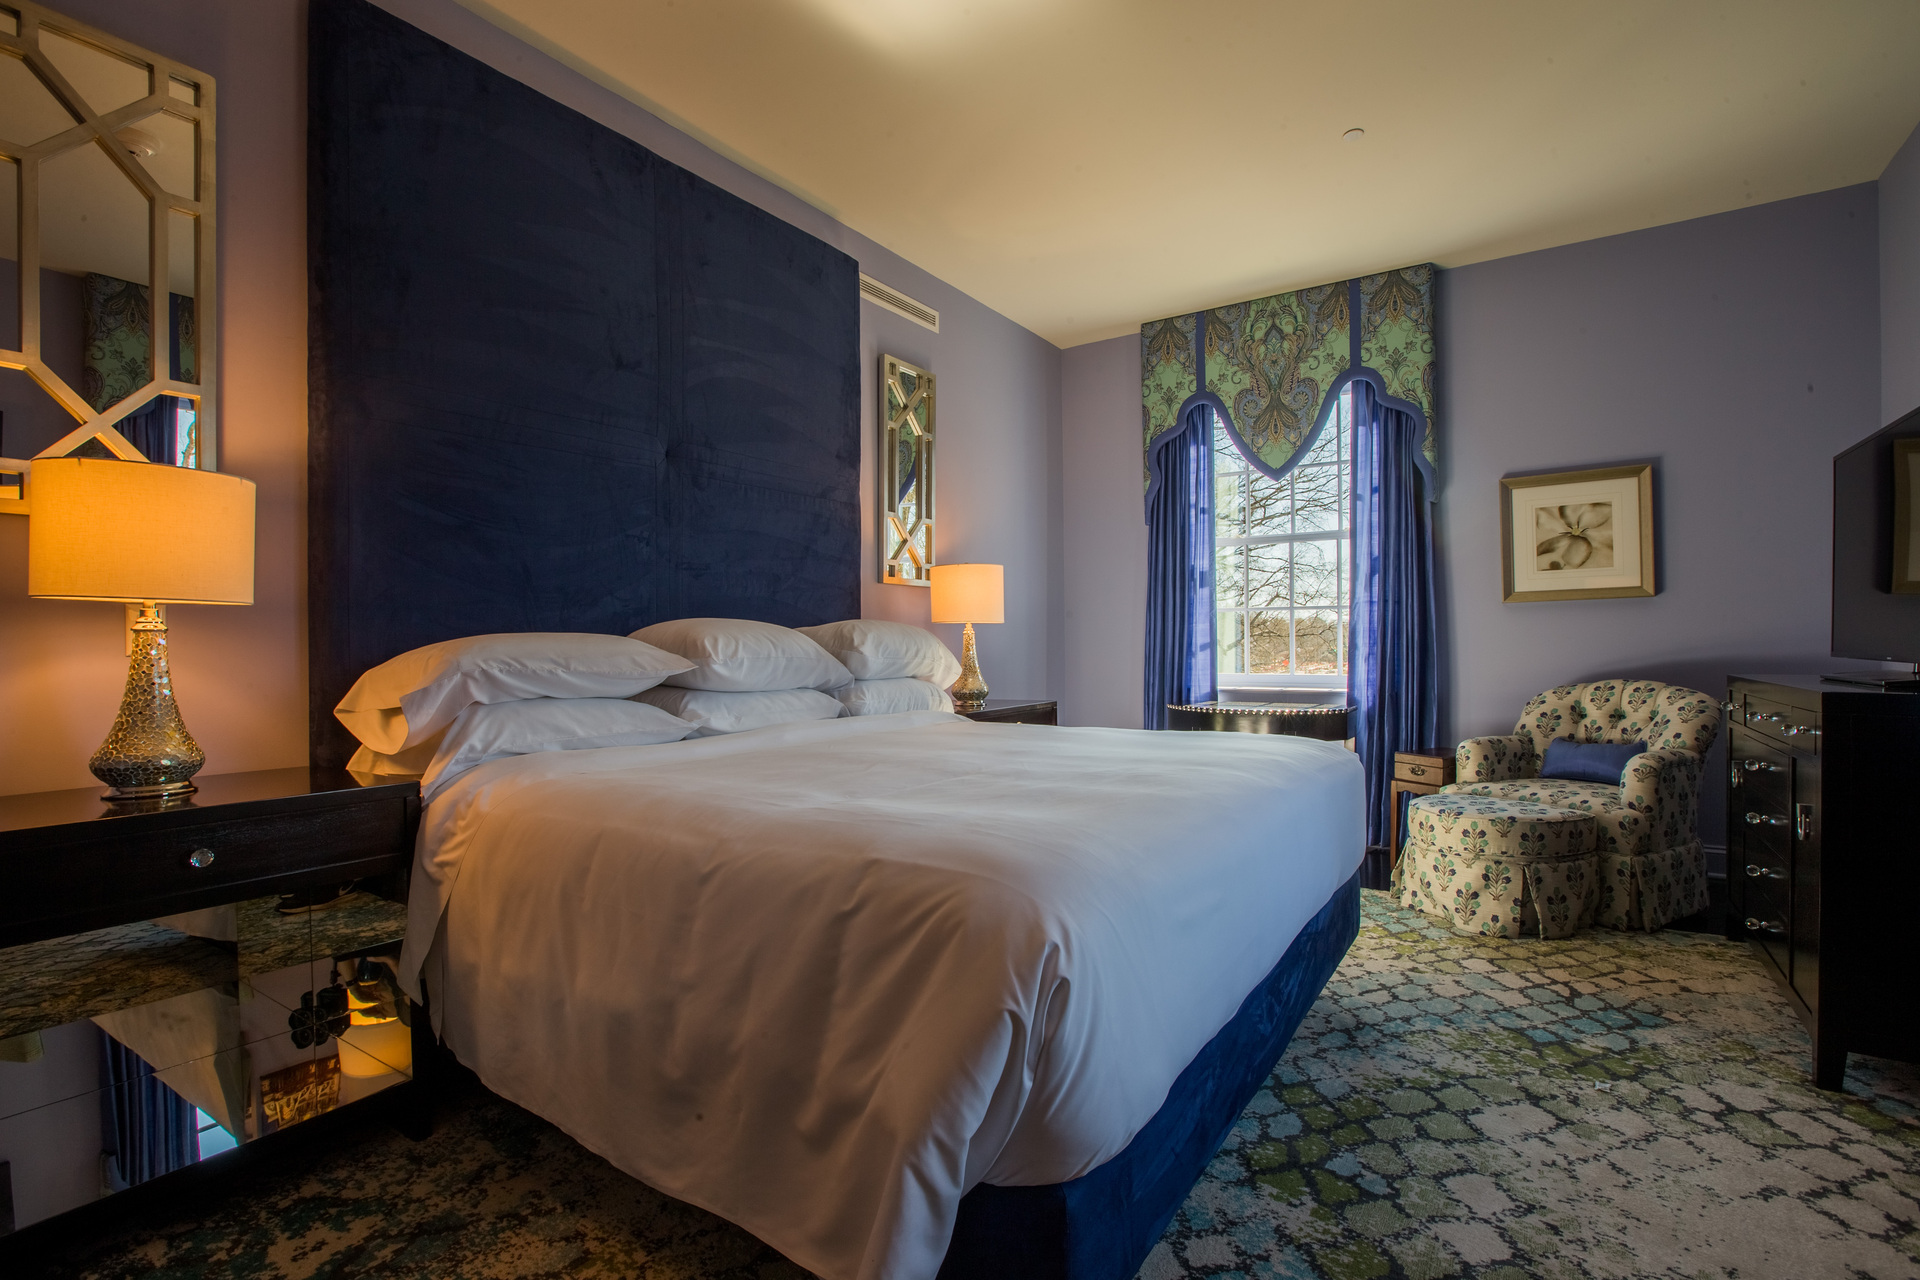 Stretch out on this comfy bed with a large upholstered headboard to relax and sleep well.  The hotel made sure to use sound-reducing drywall by QuietRock in all their rooms to create a quiet environment with little sound transferring between the rooms.